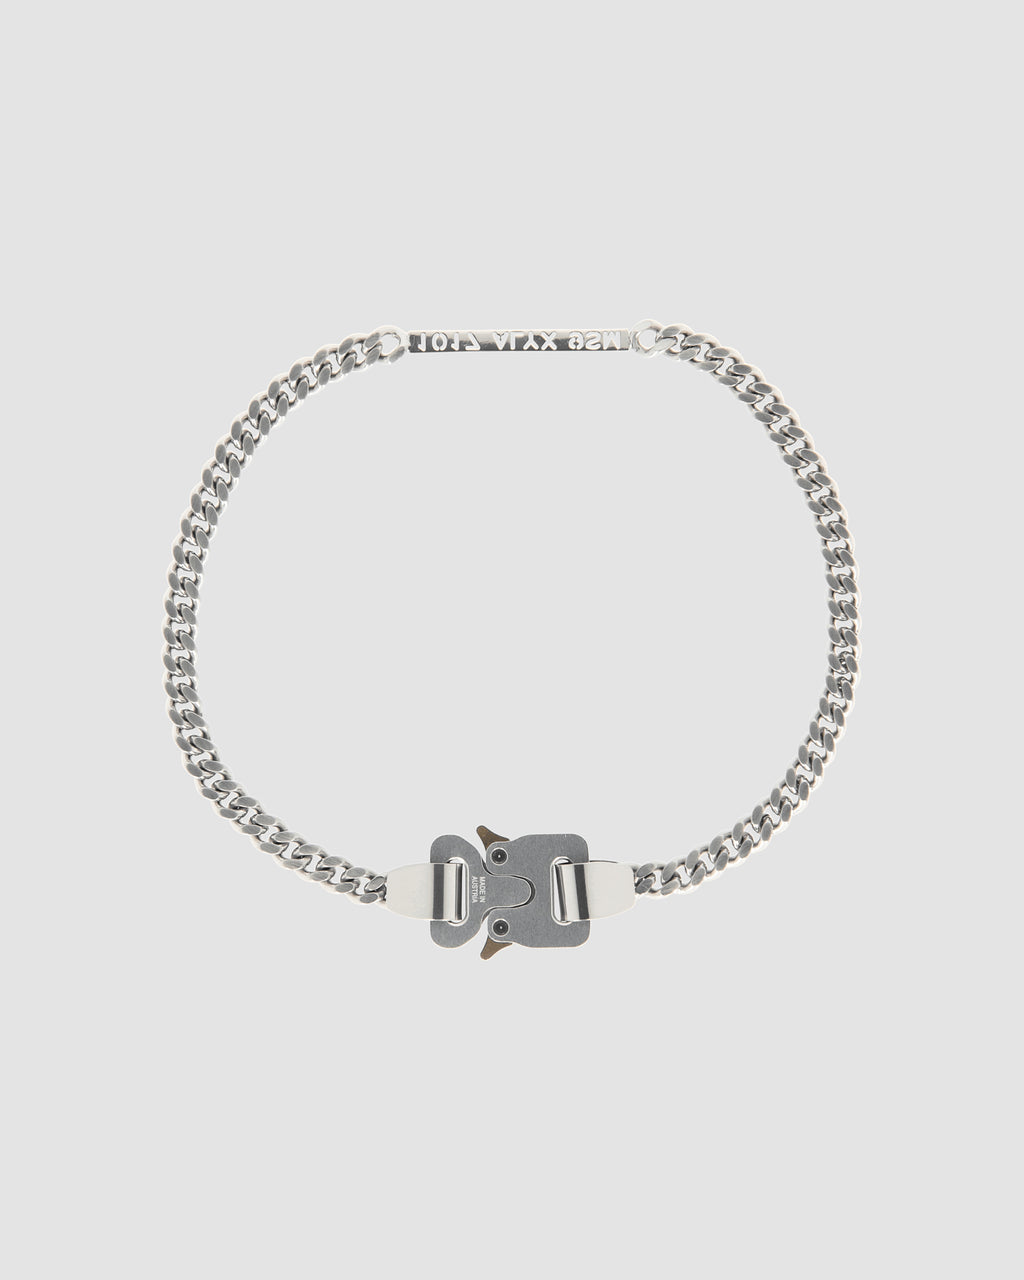 1017 ALYX 9SM | 1017 ALYX 9SM BUCKLE NECKLACE | Jewellery | Accessories, Google Shopping, Jewellery, jewelry, Man, S20, S20EXSH, SILVER, UNISEX, Woman